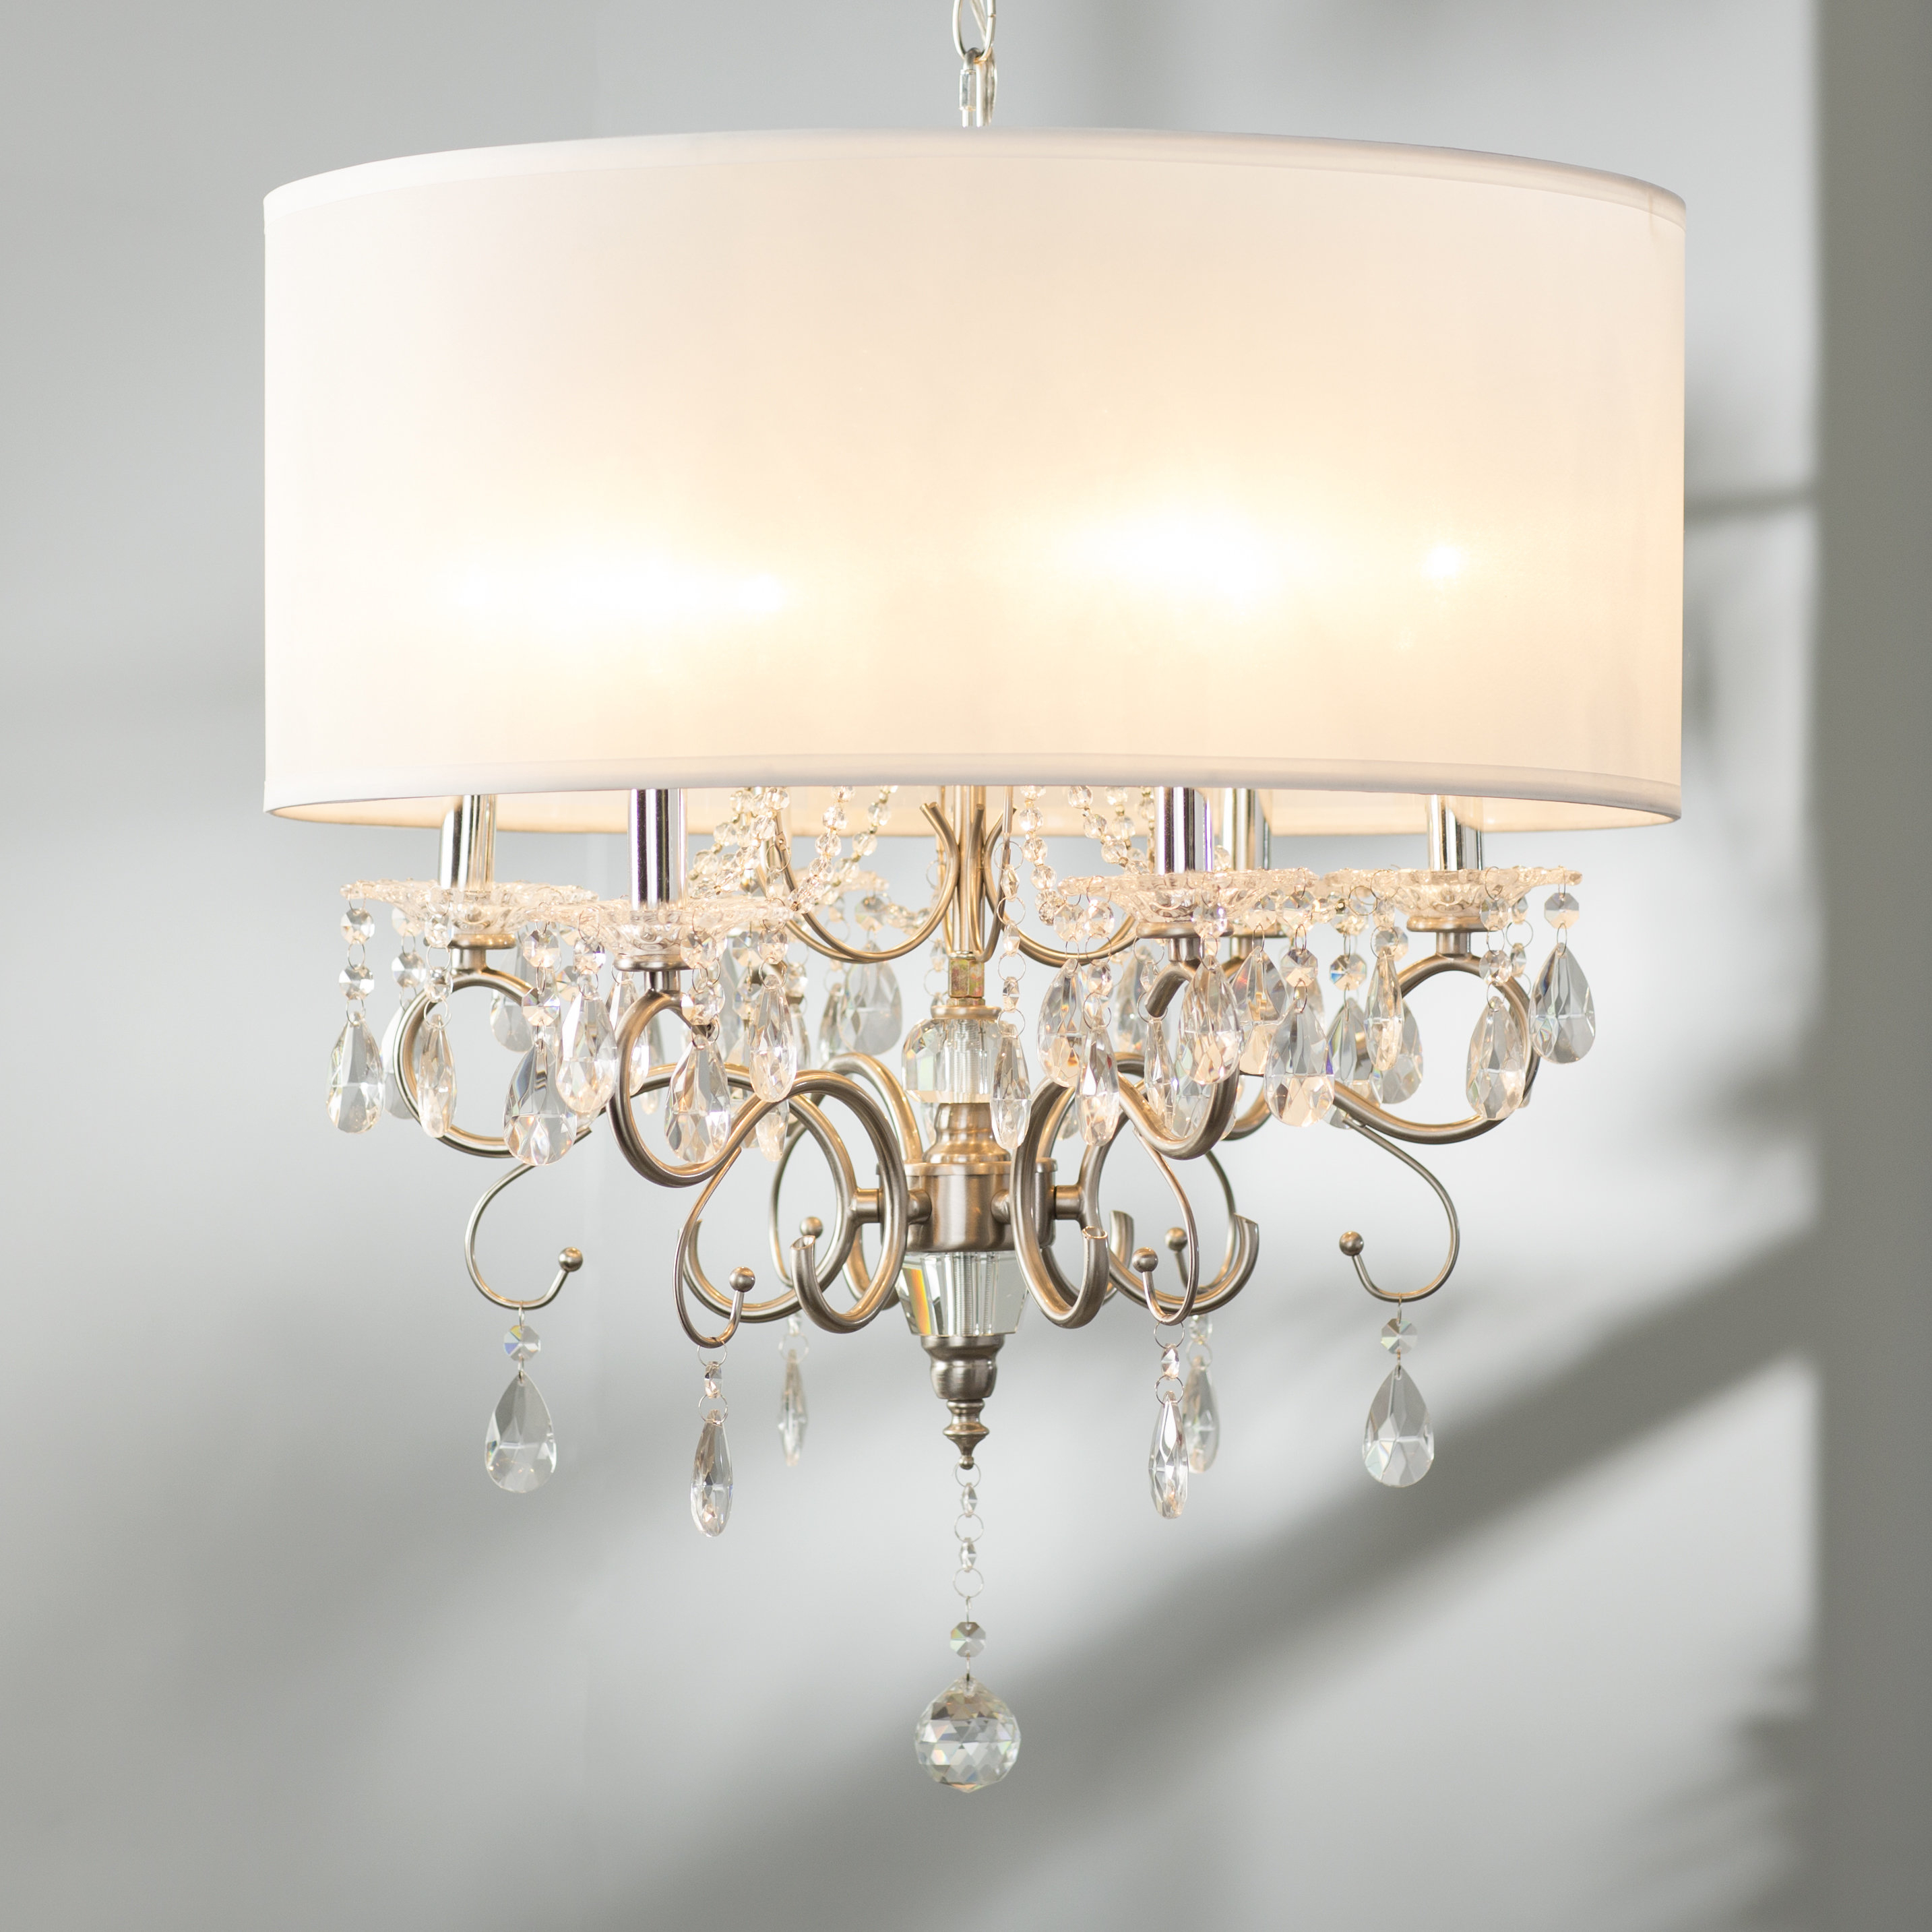 Drum Chandeliers Sale   Up To 65% Off Until September 30Th Pertaining To Burton 5 Light Drum Chandeliers (Photo 28 of 30)